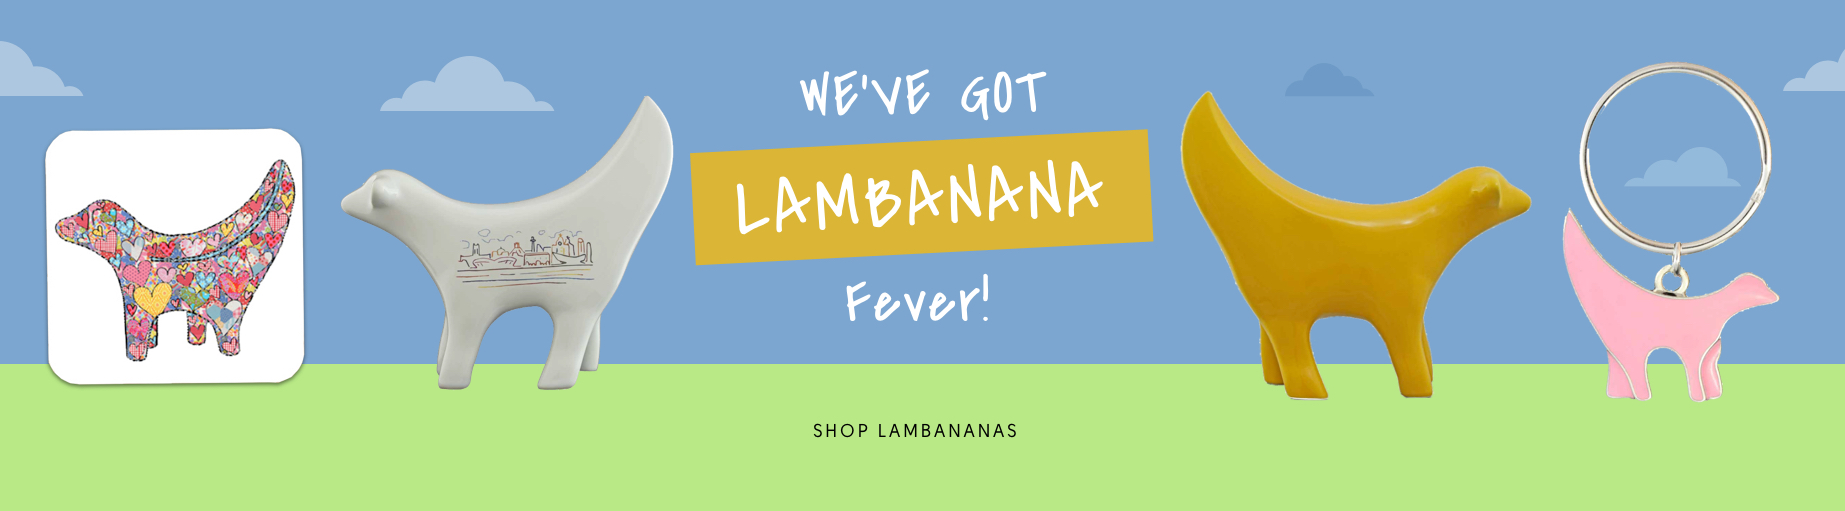 We've Got Lambanana Fever!